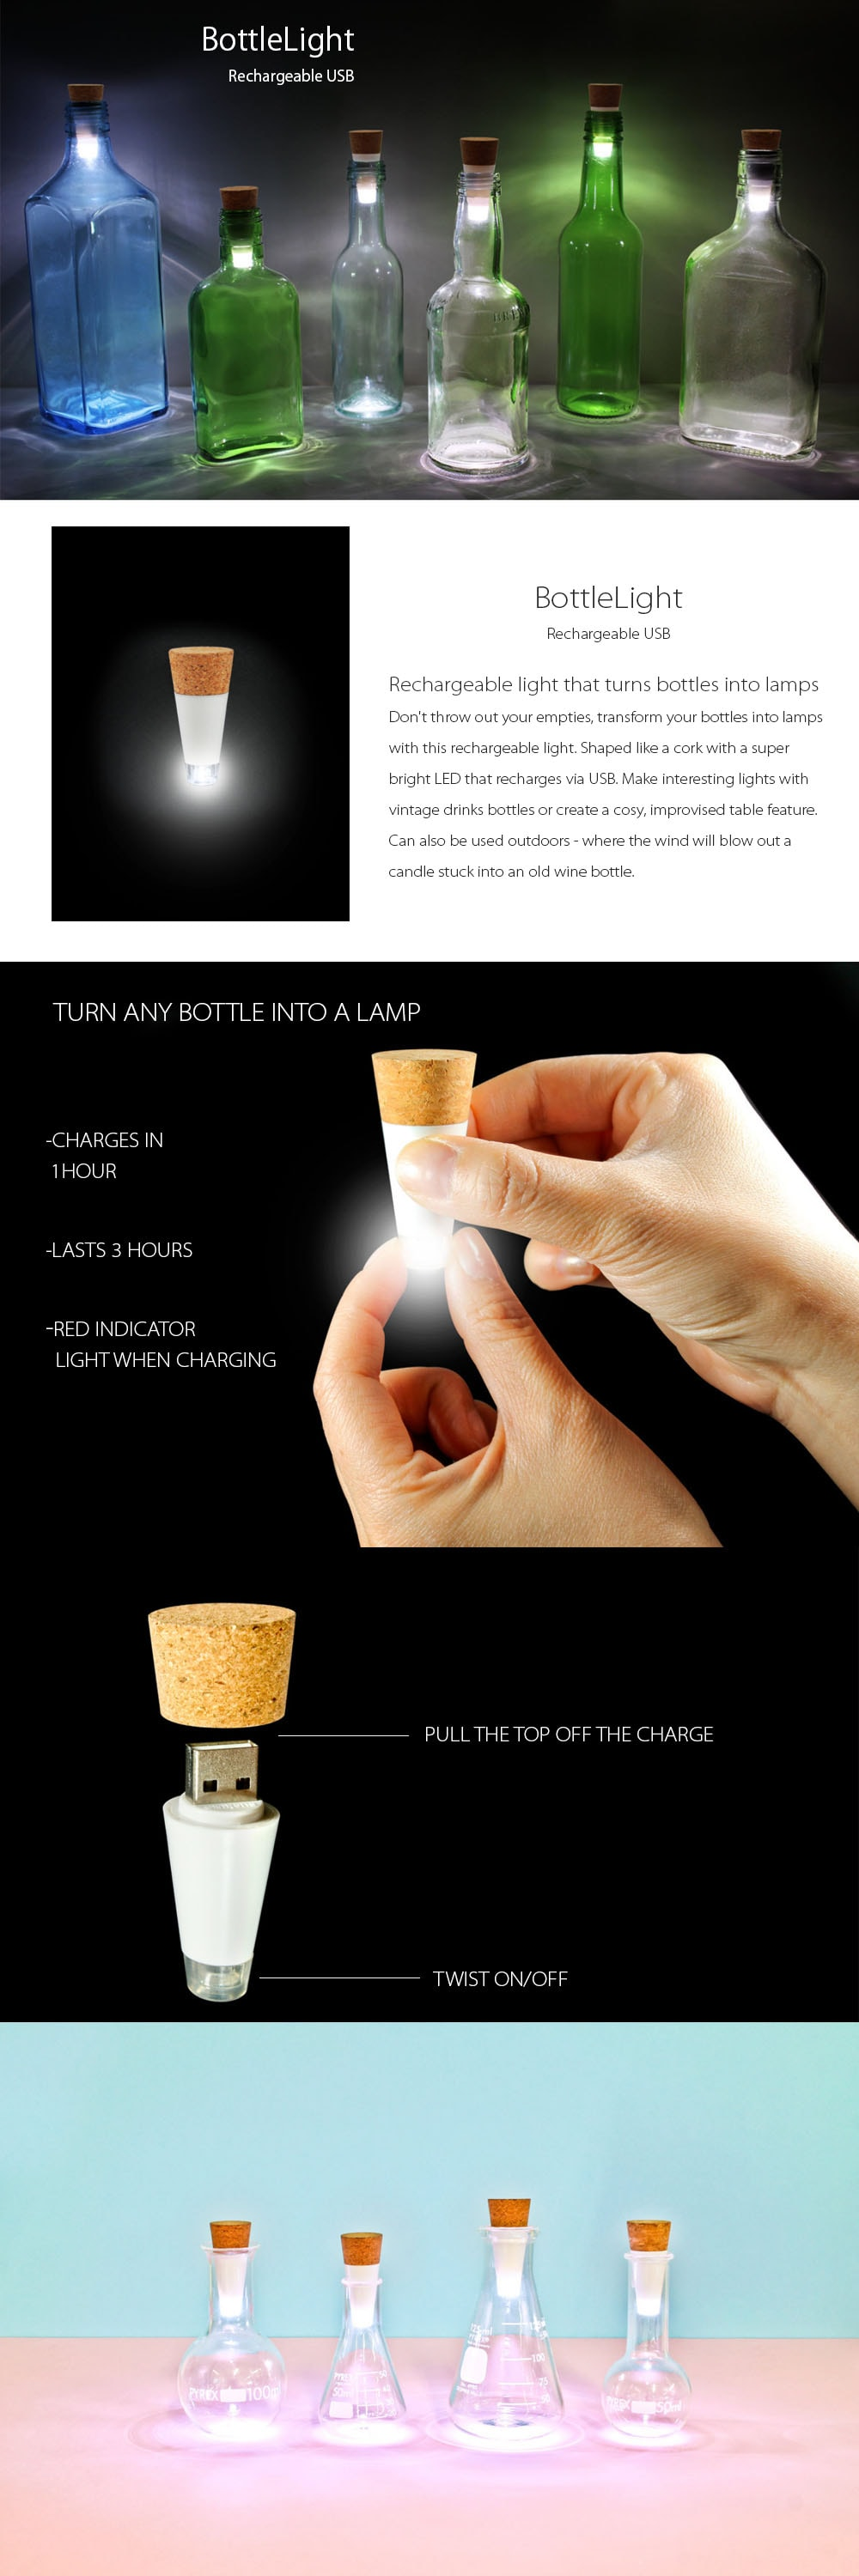 Bottlelight Rechargeable Light That Turns Bottles Into Lamps